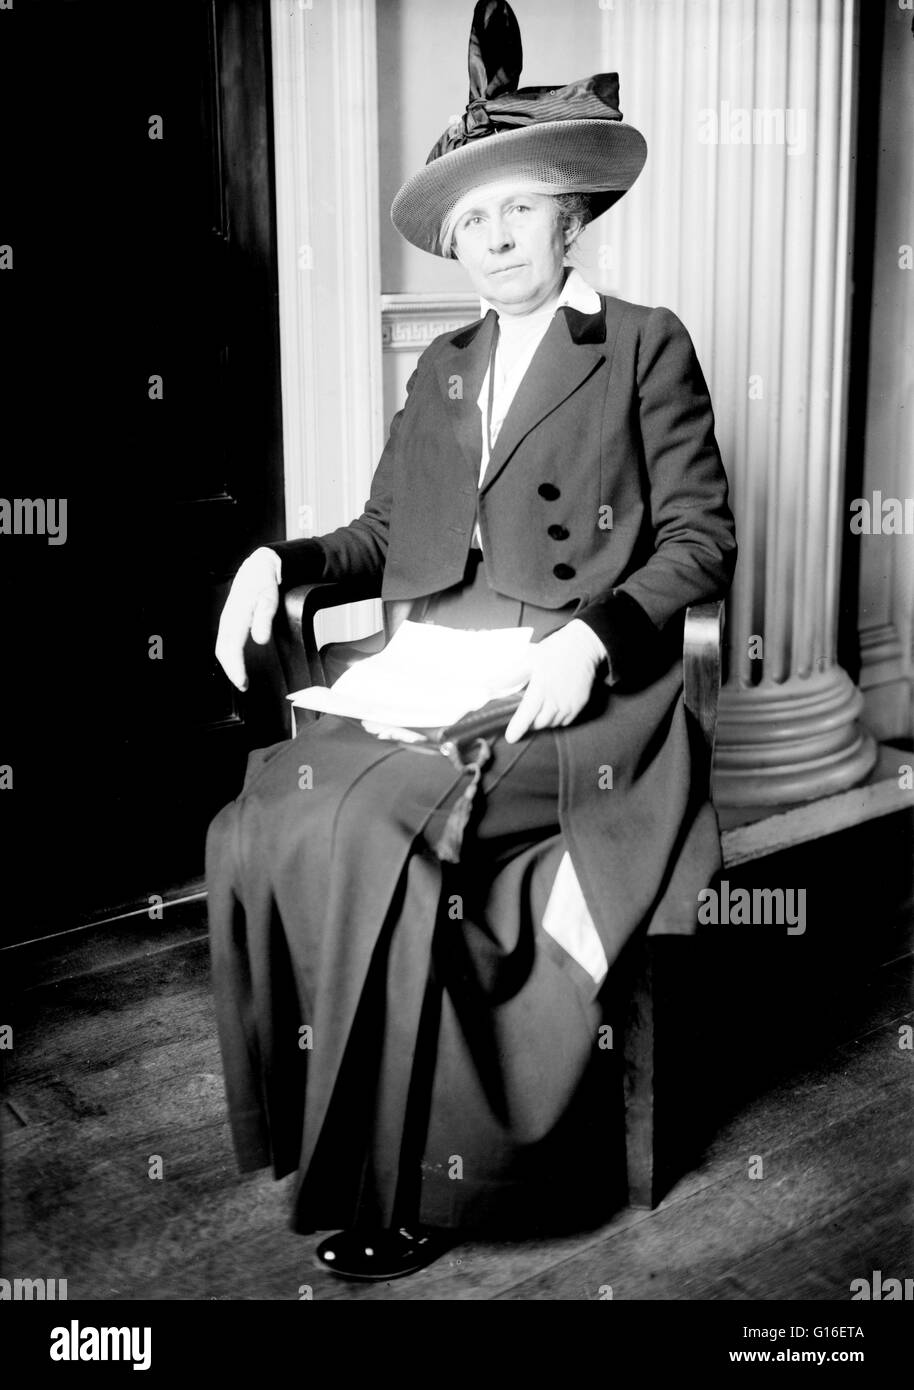 Ida Minerva Tarbell (November 5, 1857 - January 6, 1944) was an American teacher, author and journalist. She was - Stock Photo